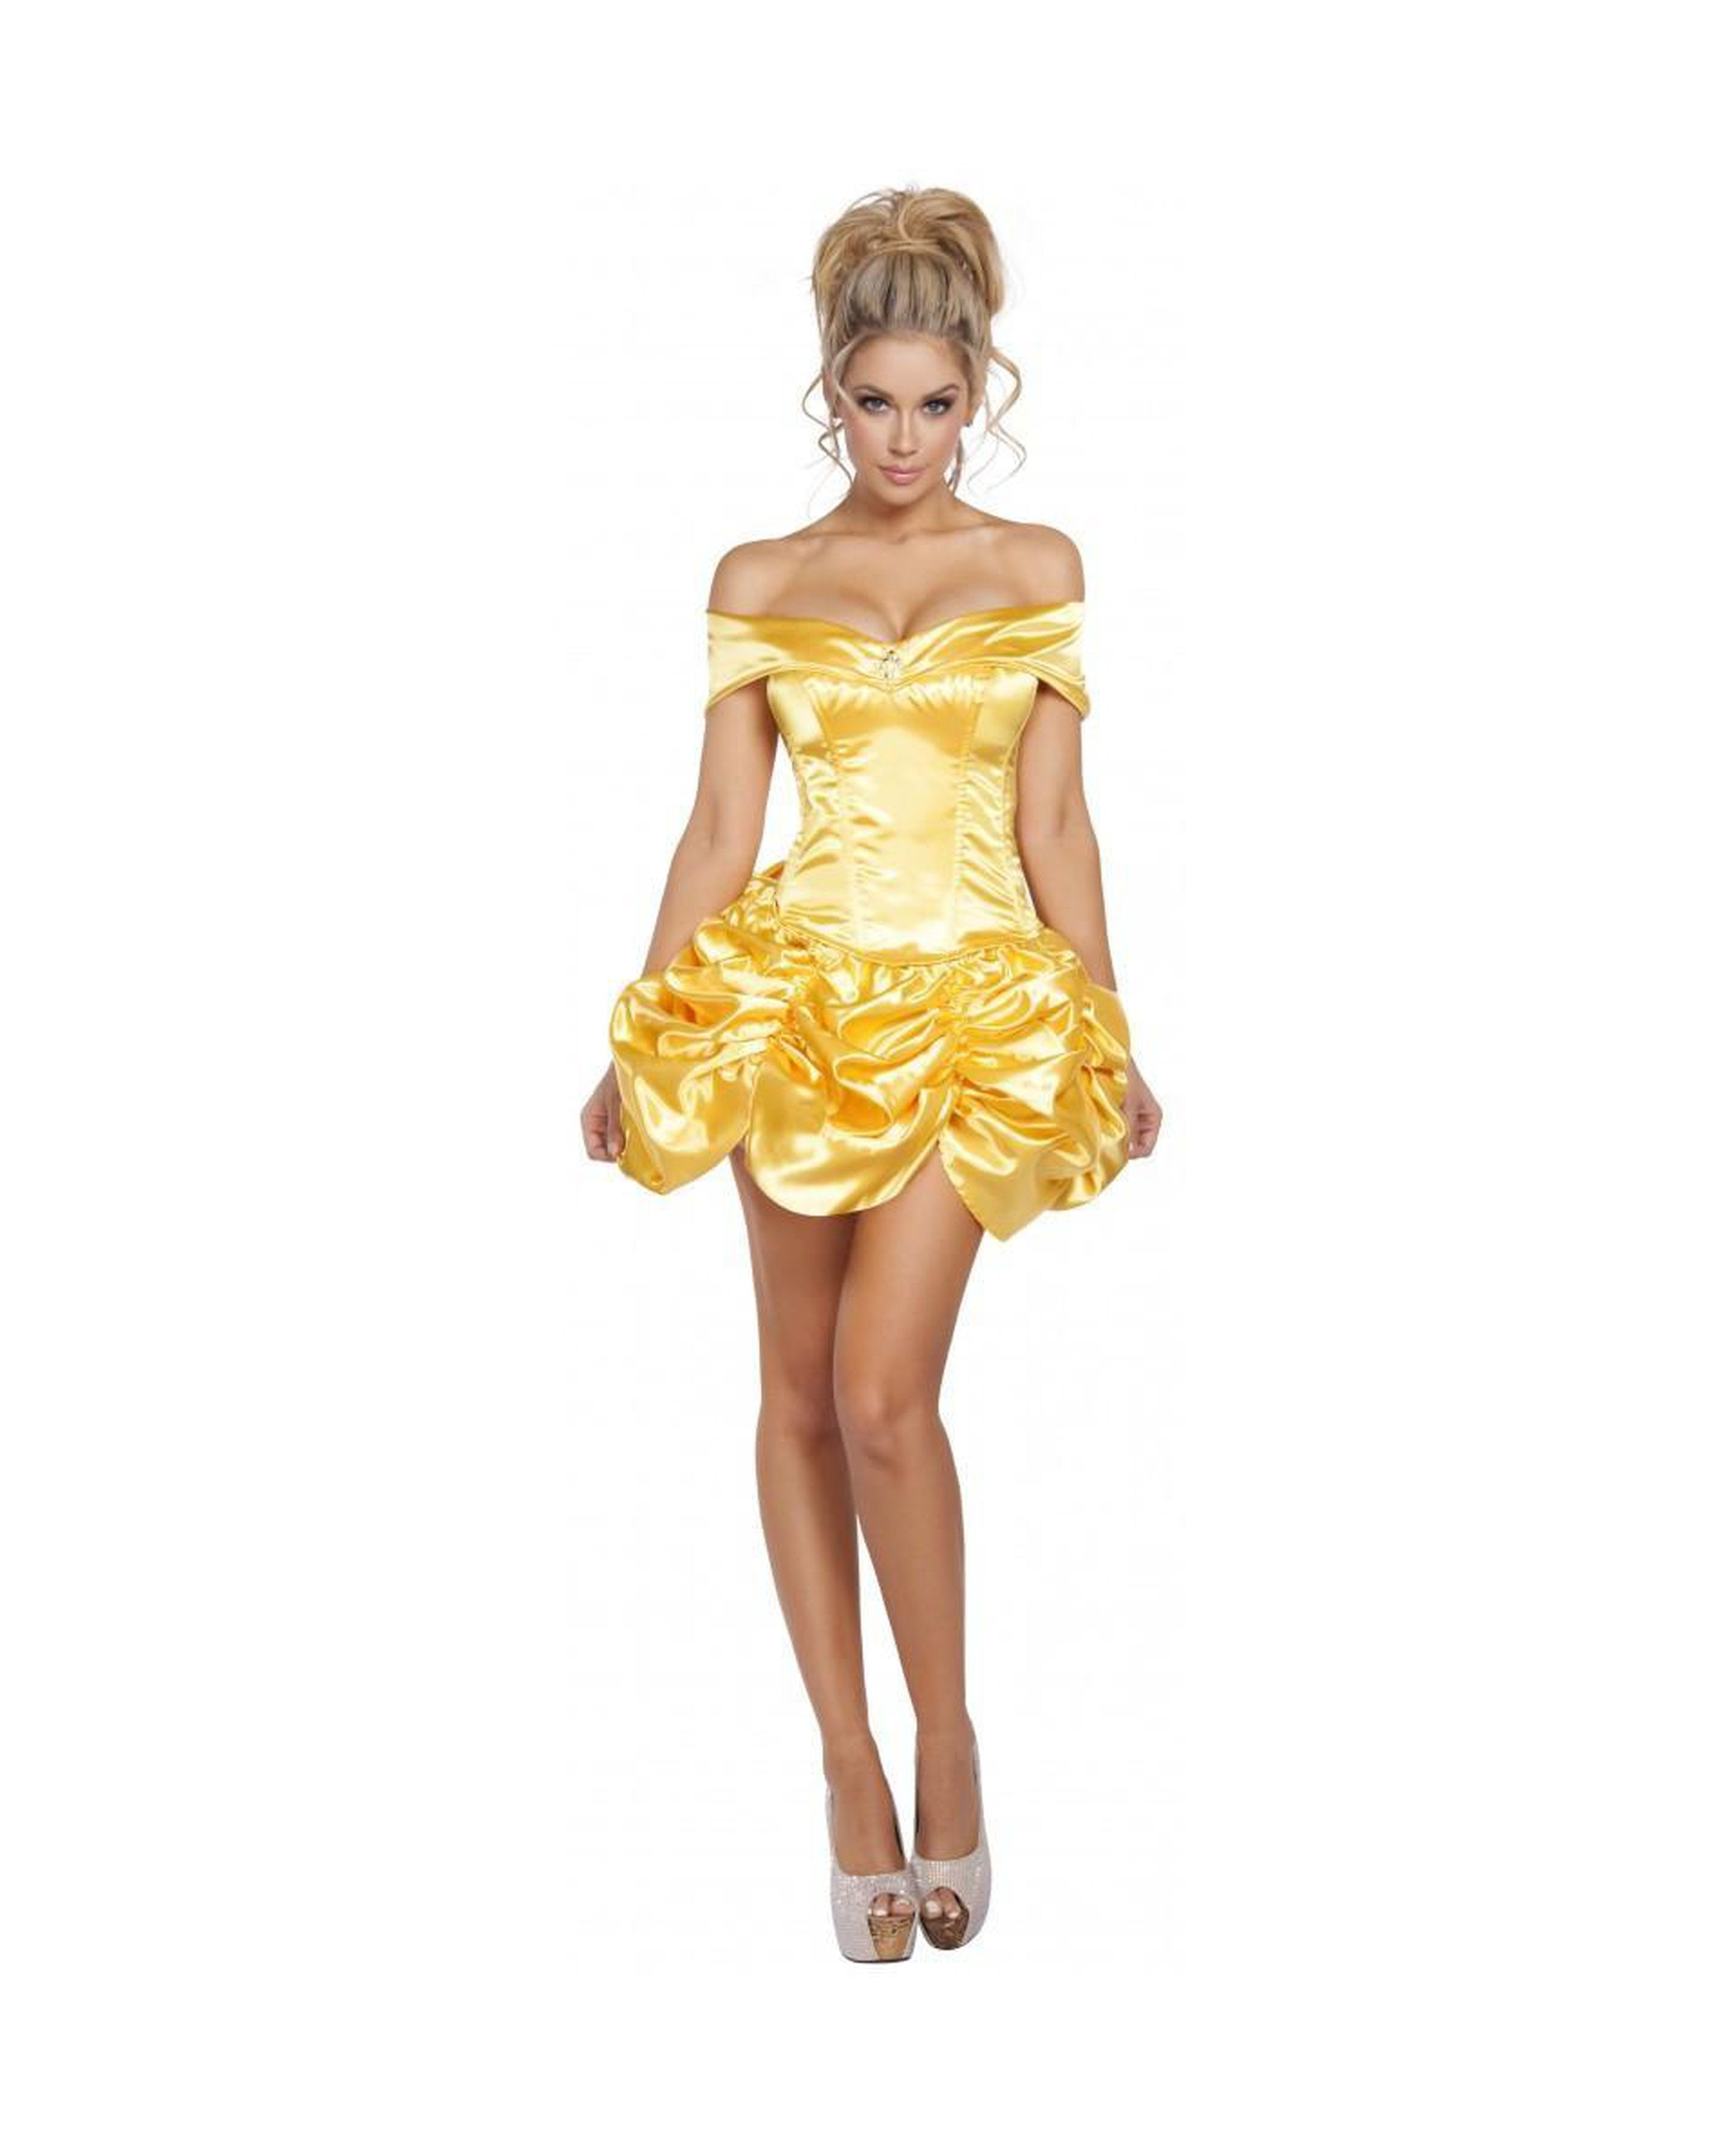 Foxy Fairytale Cutie costumes Color GoldSize SmallNakees